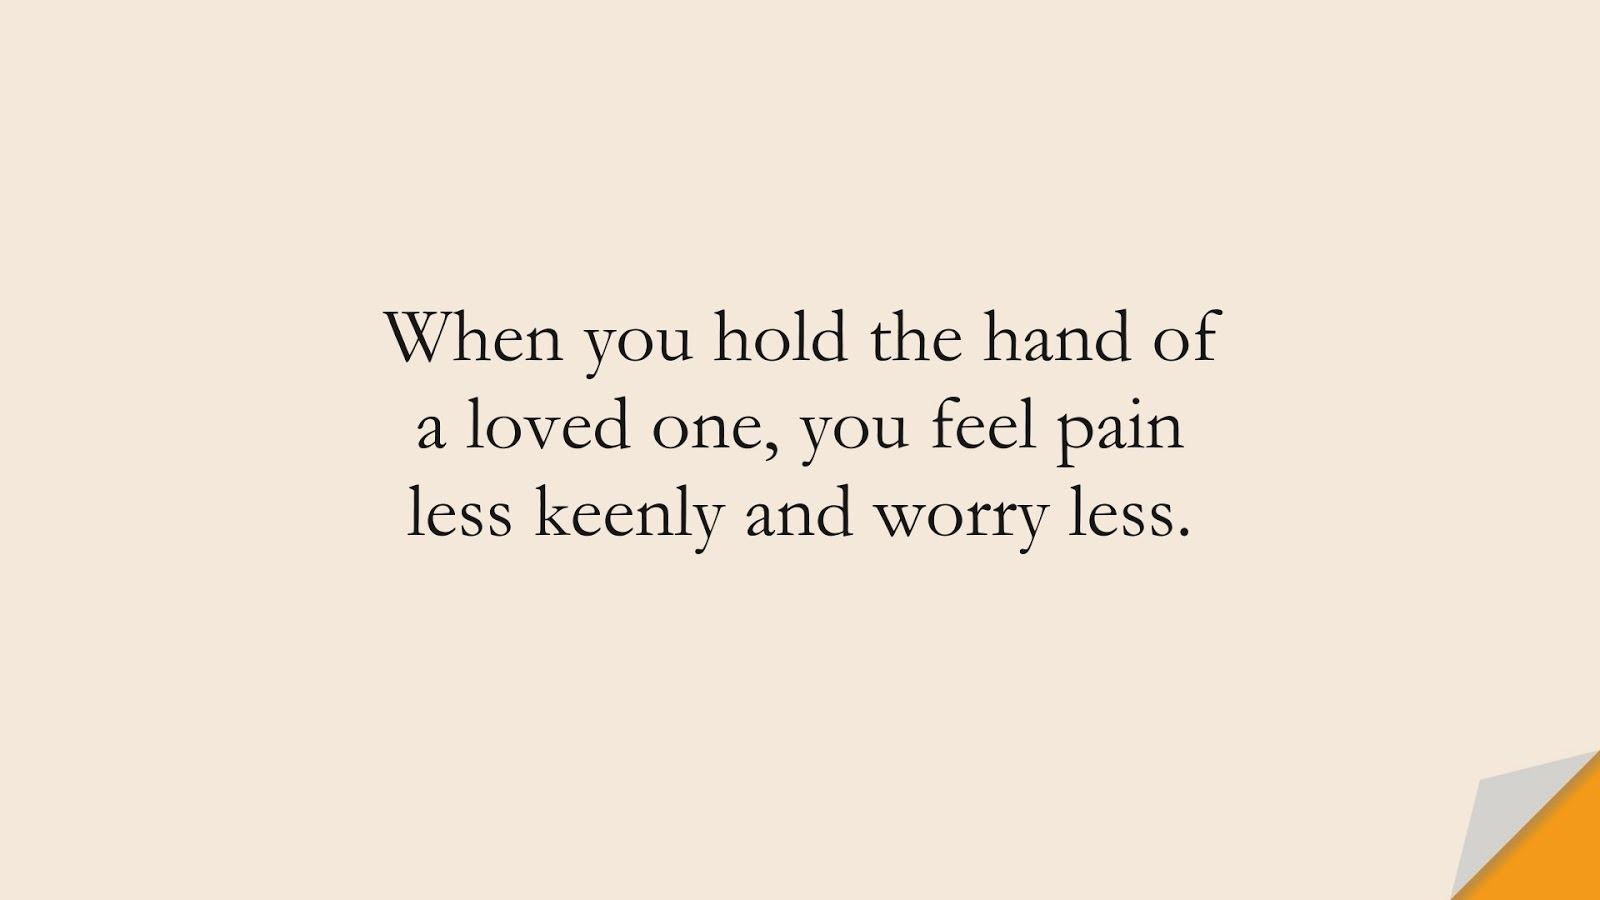 When you hold the hand of a loved one, you feel pain less keenly and worry less.FALSE